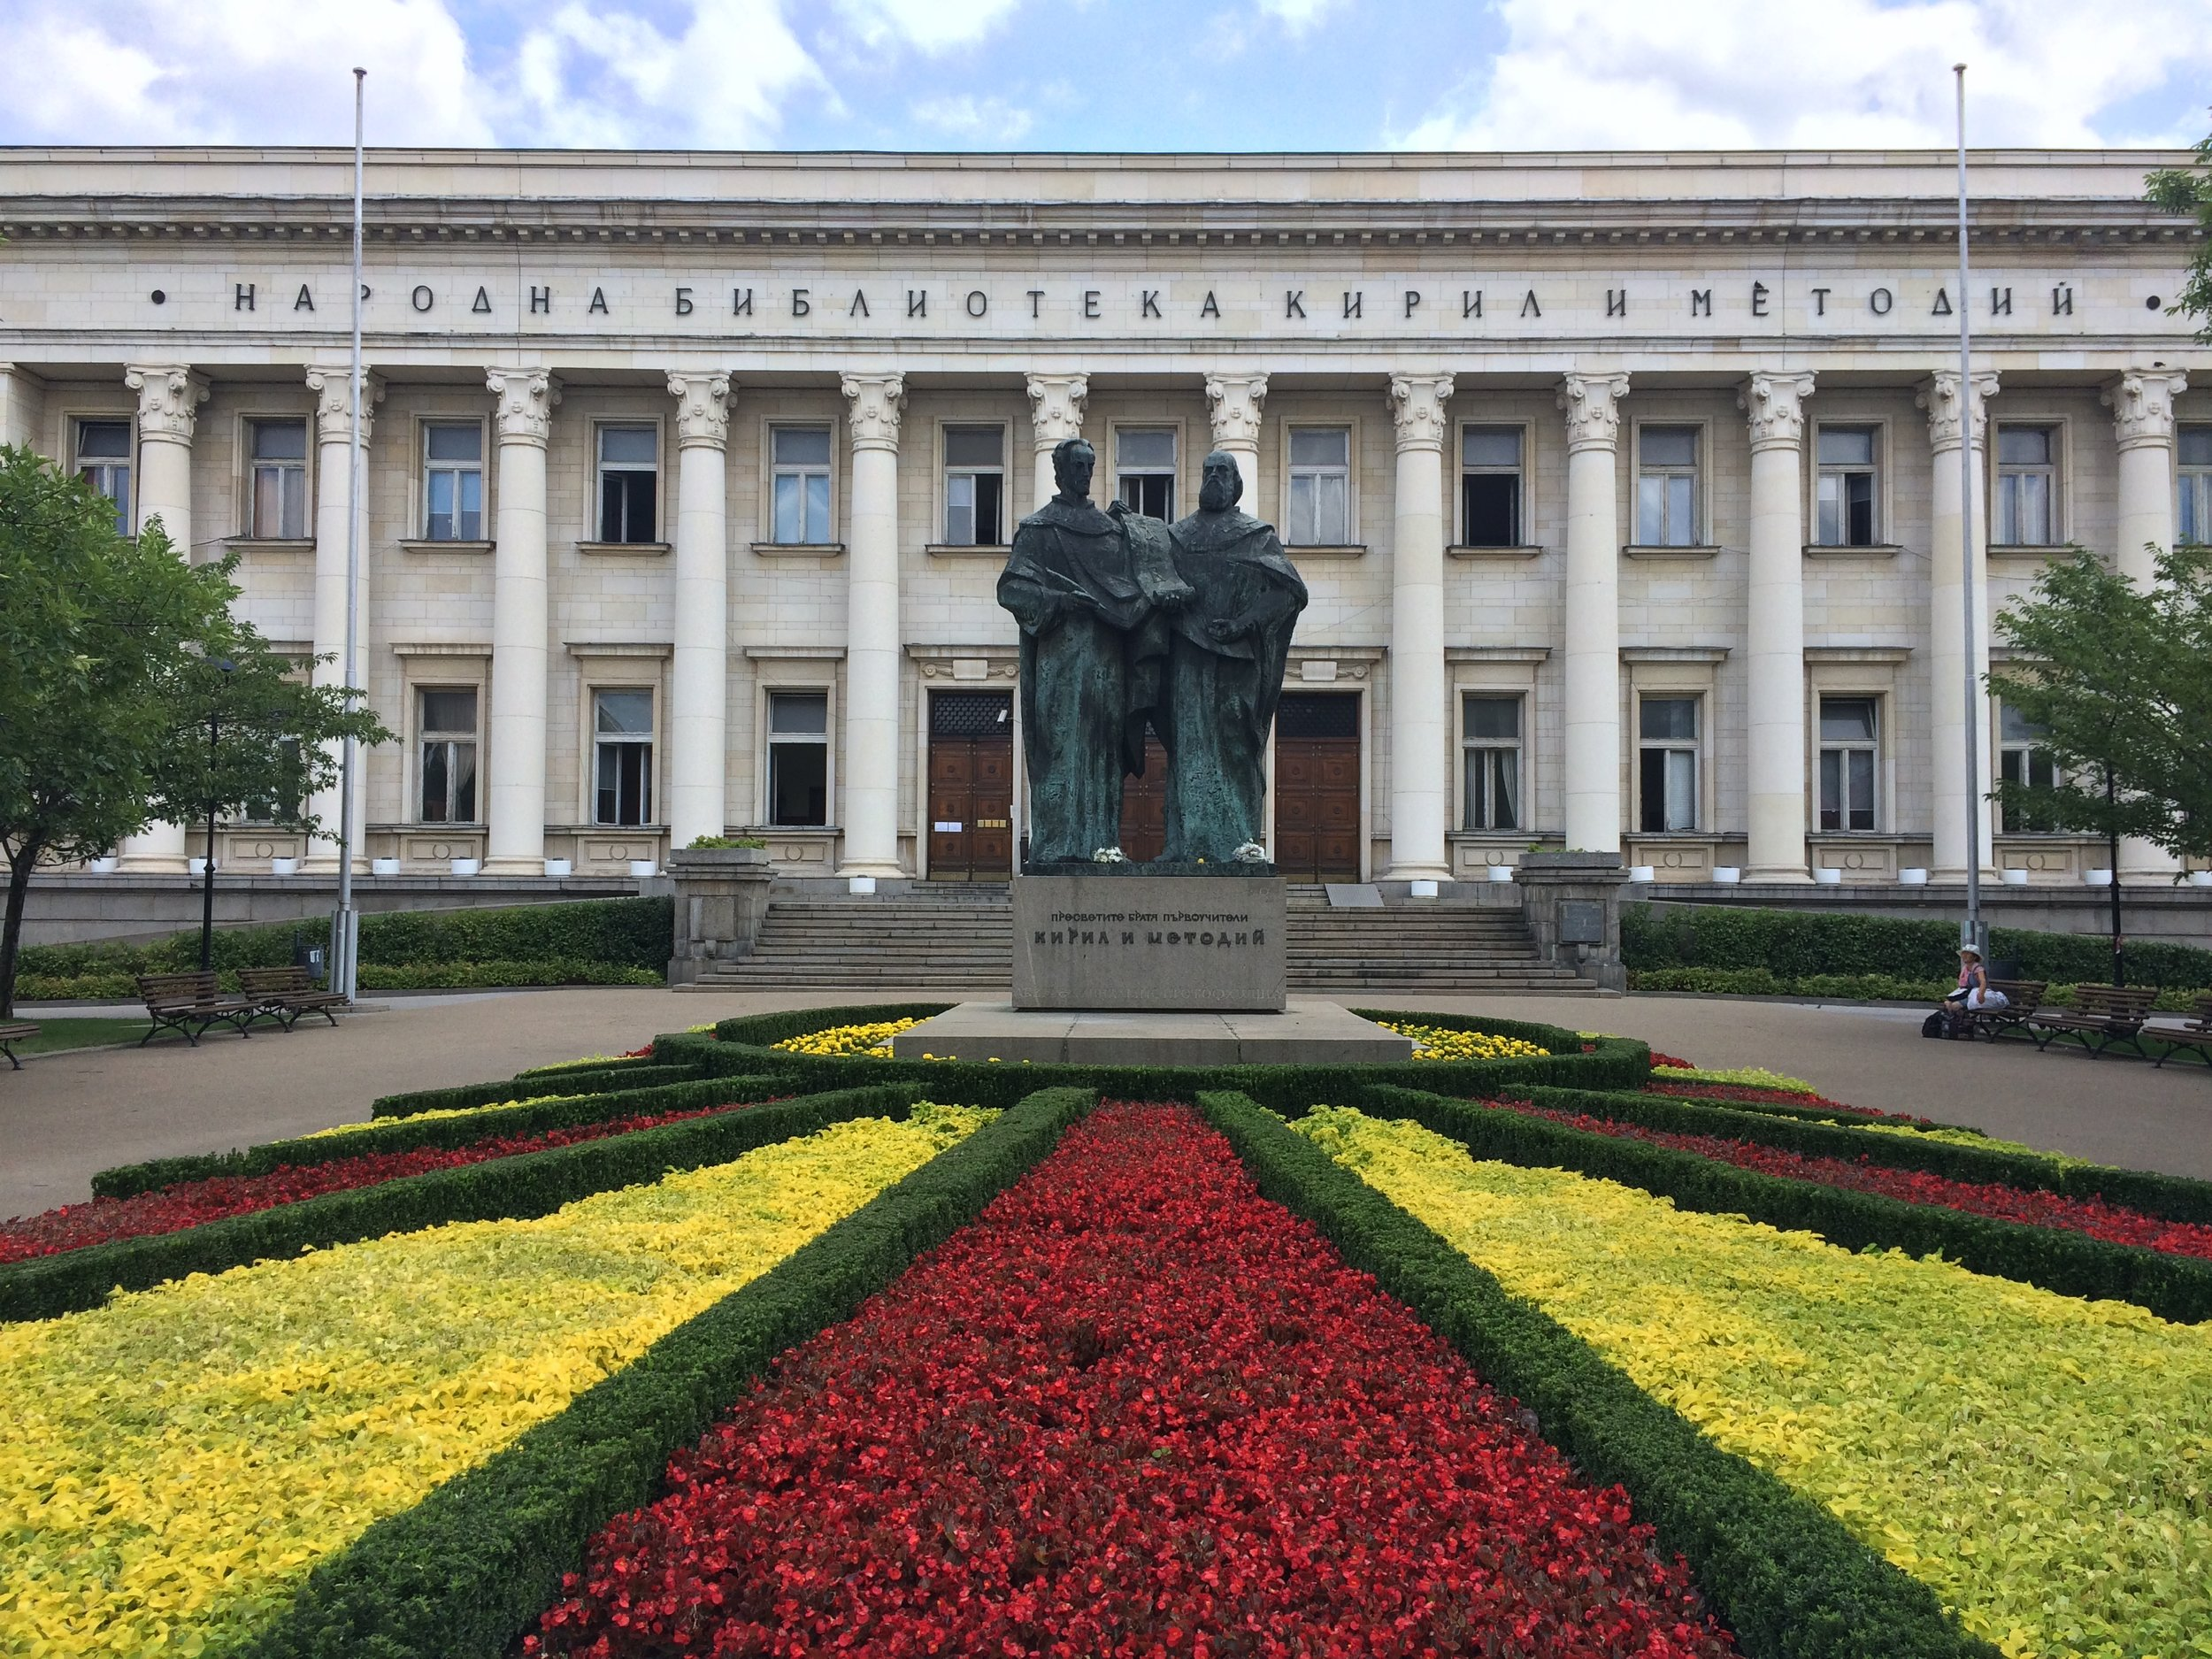 Bulgarian National Library, Sofia, Bulgaria